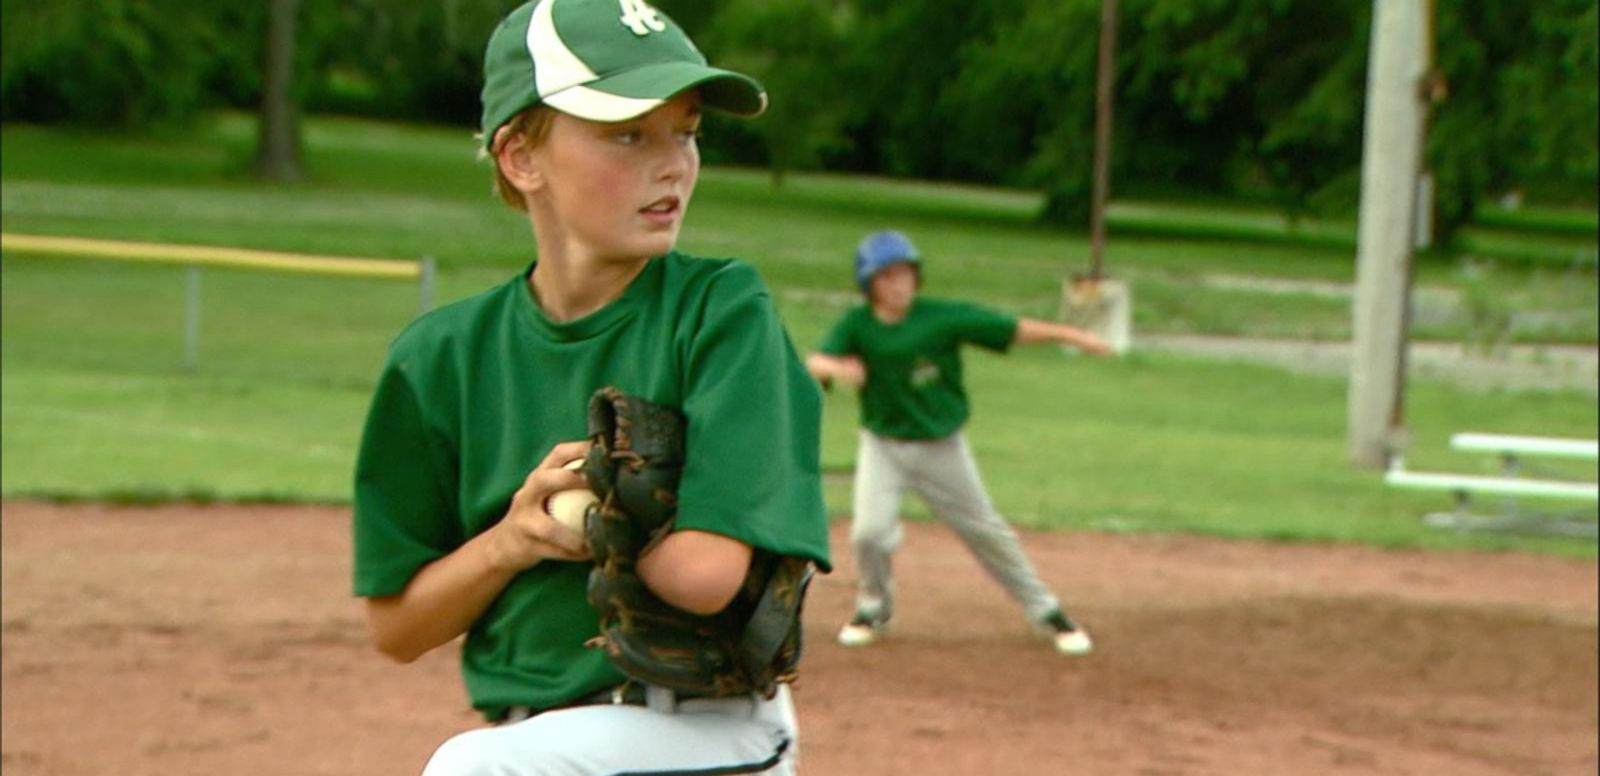 VIDEO: 12-Year-Old Baseball Phenomenon Wows Crowds Despite Having 1 Arm